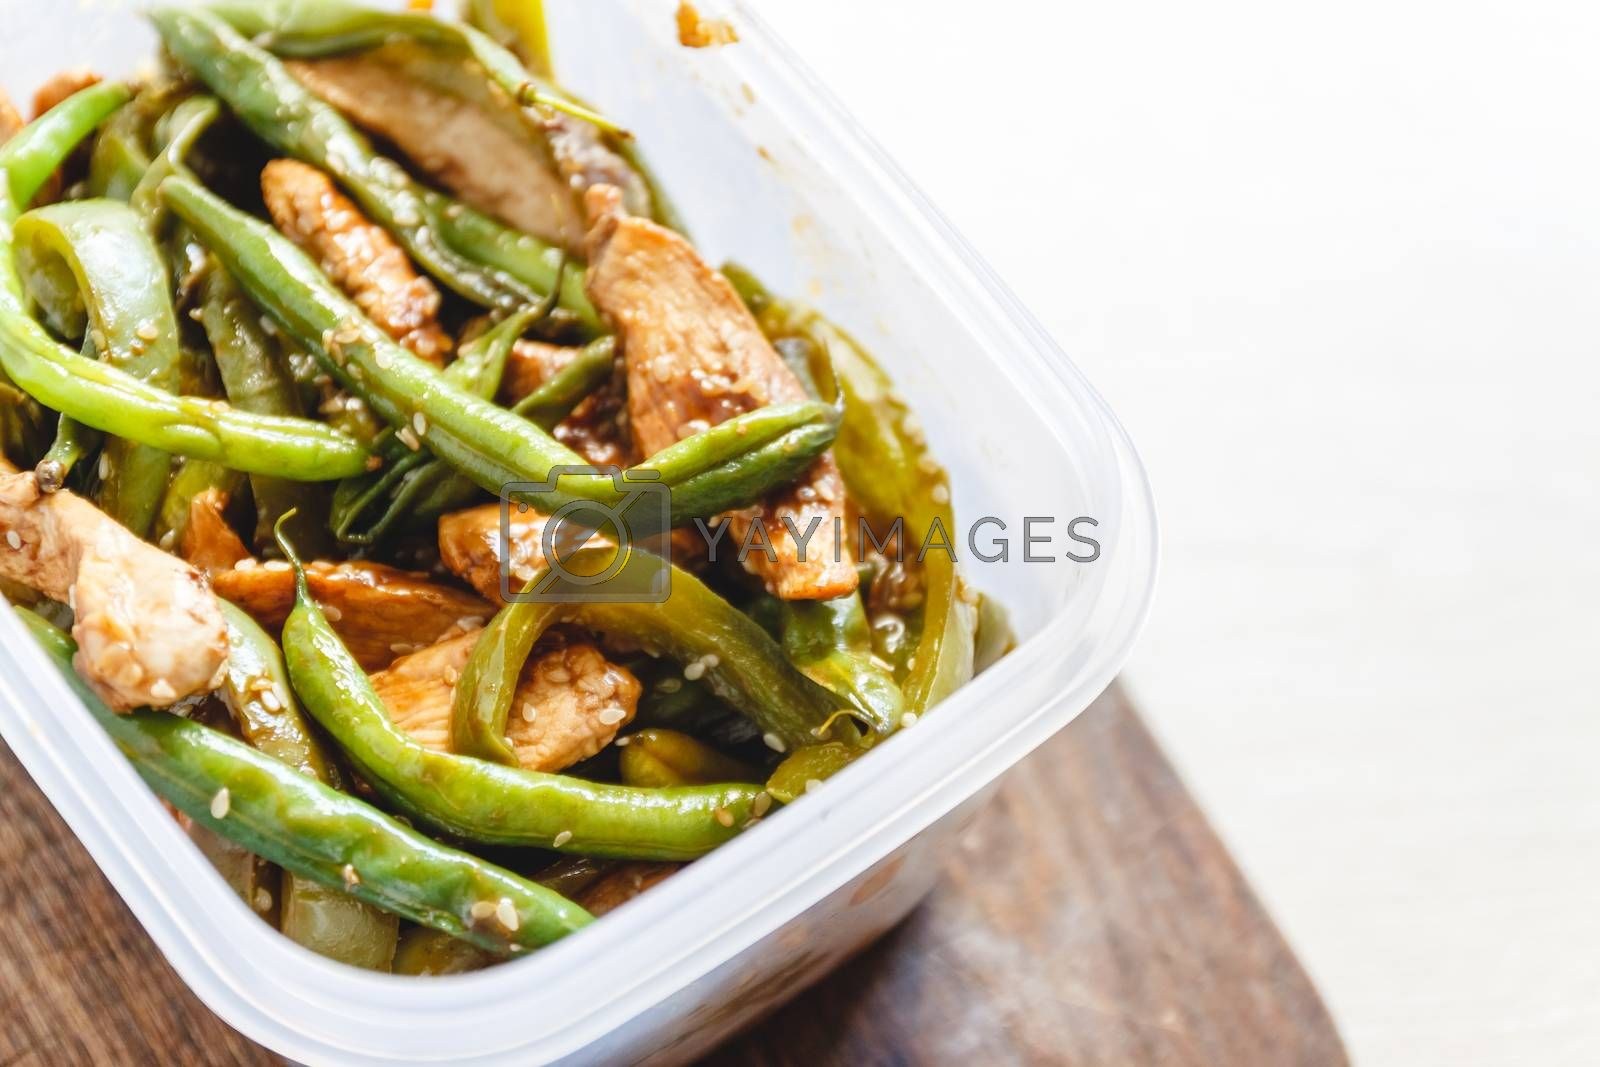 Chicken stew and green beans in plastic ovens for cold storage o by Tanacha